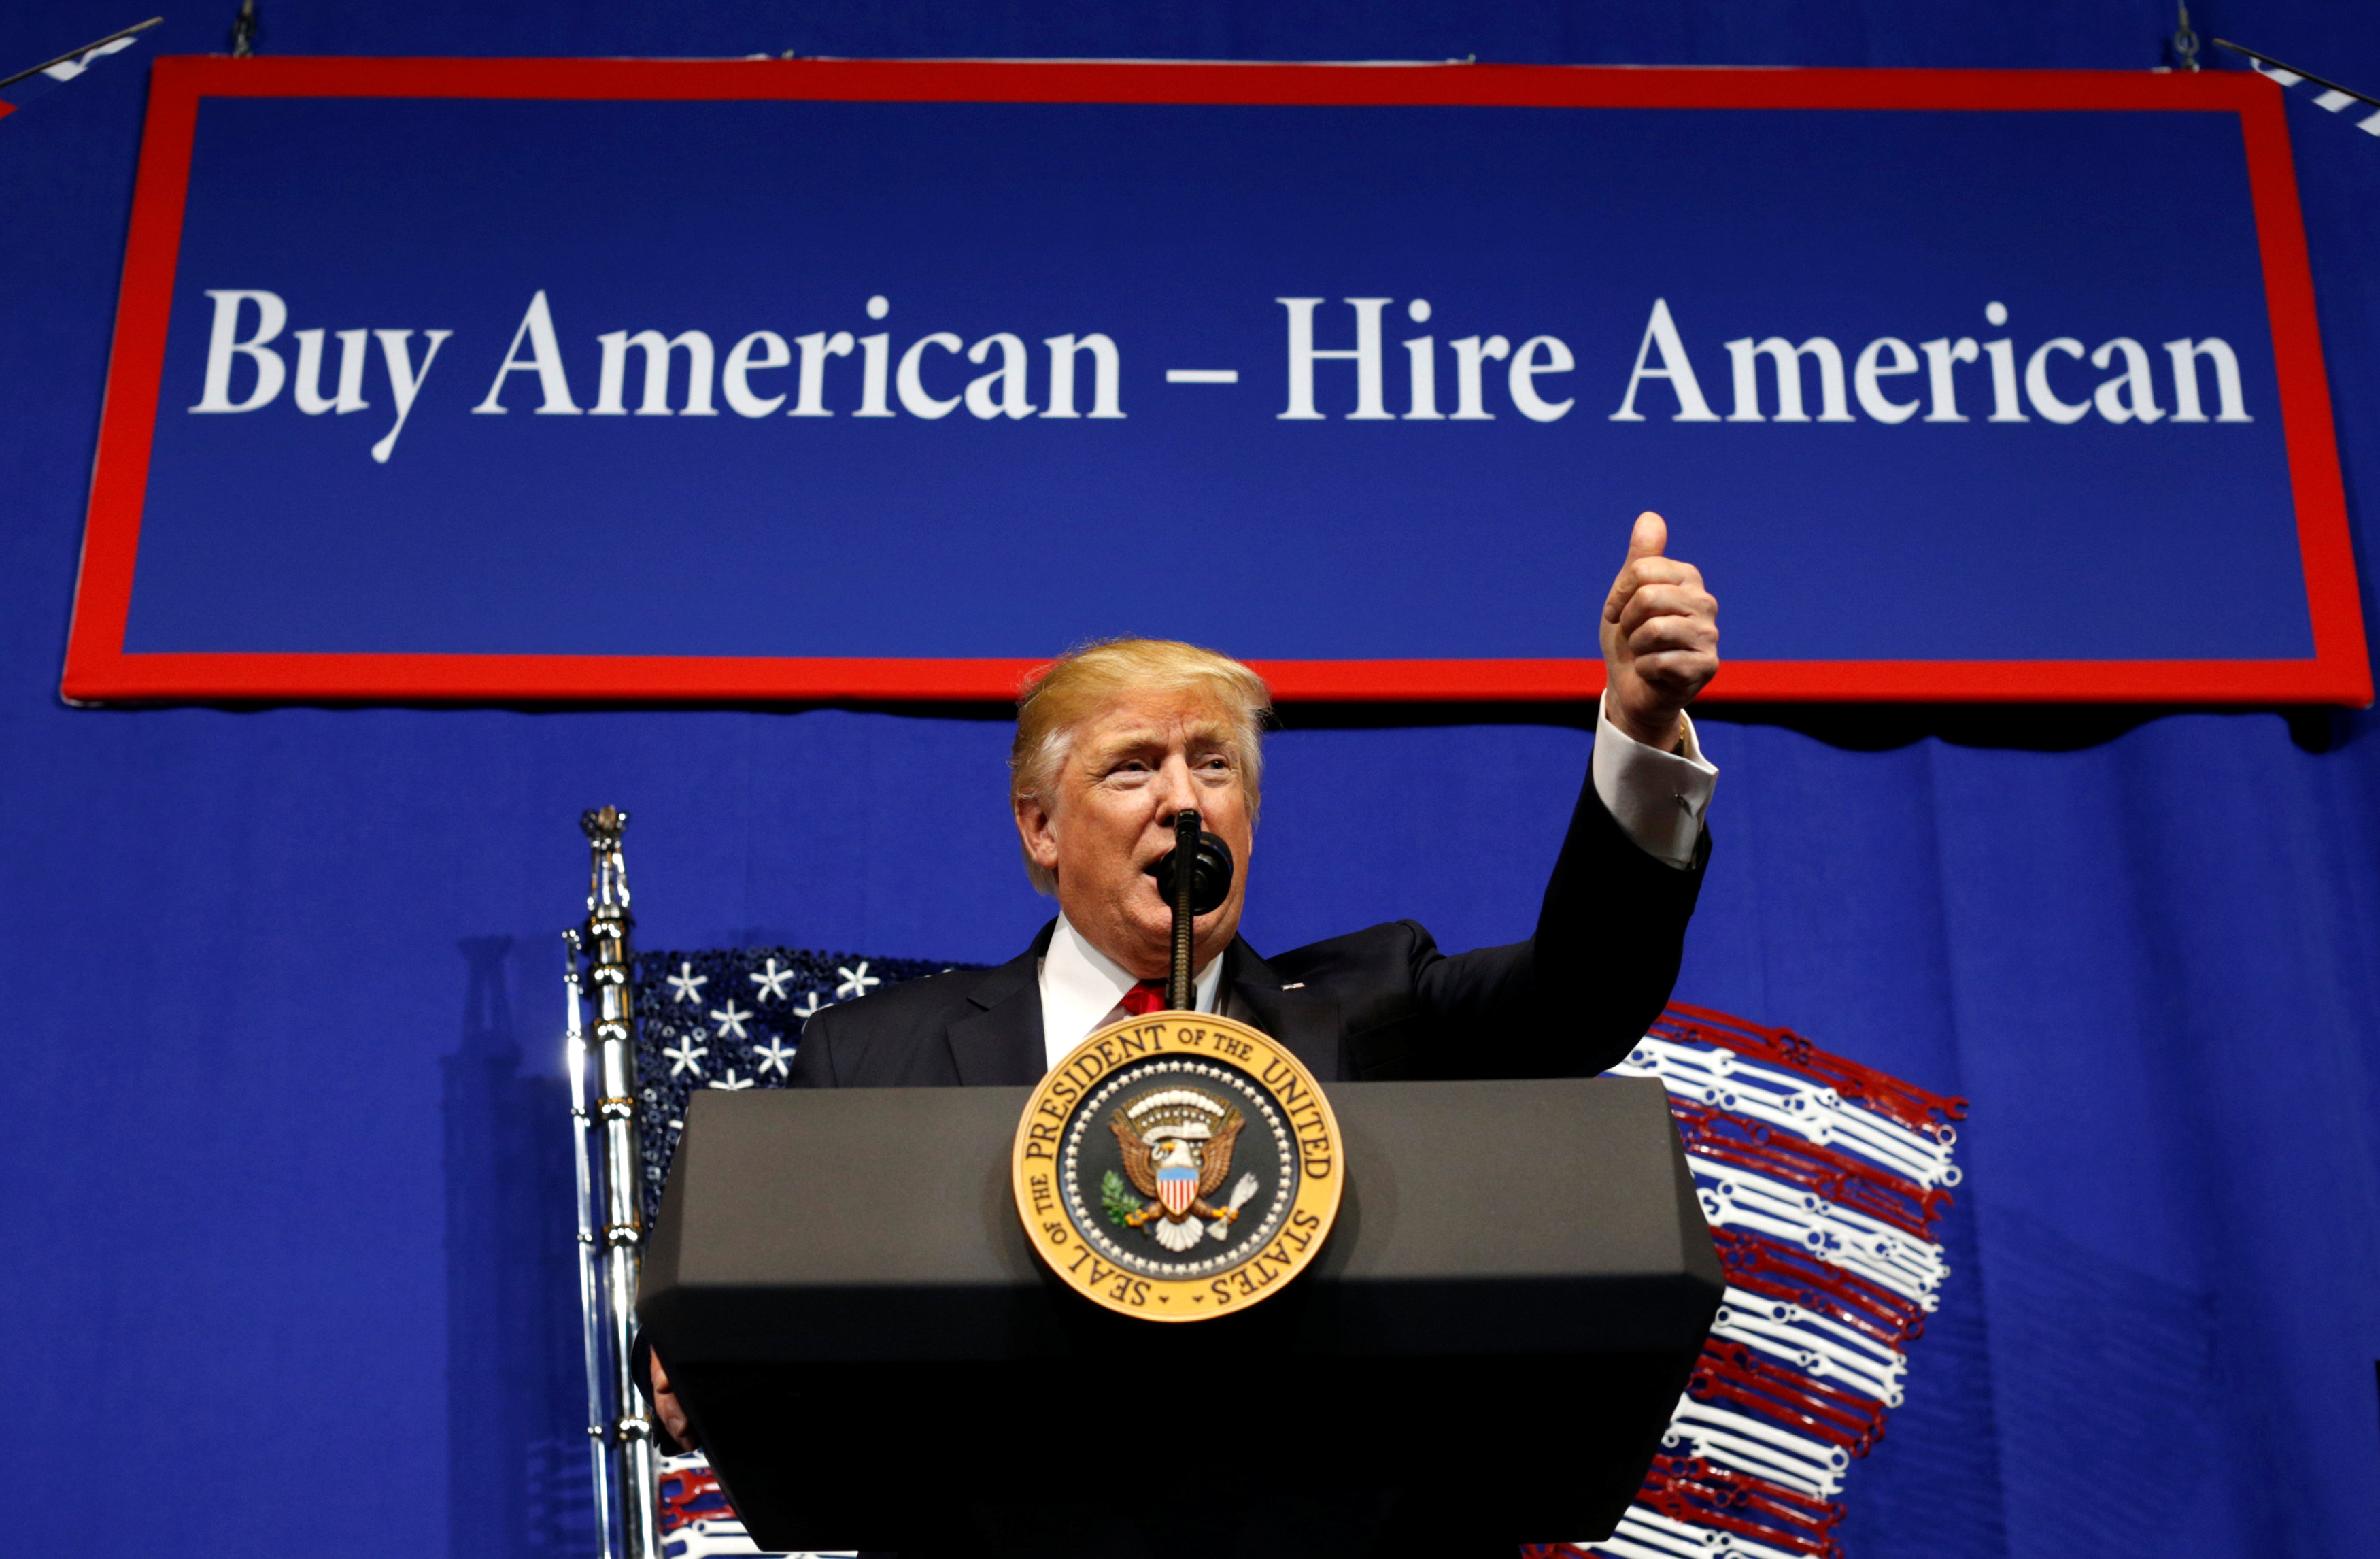 'Greatly value' Indian investments, says US amid H1B visa row